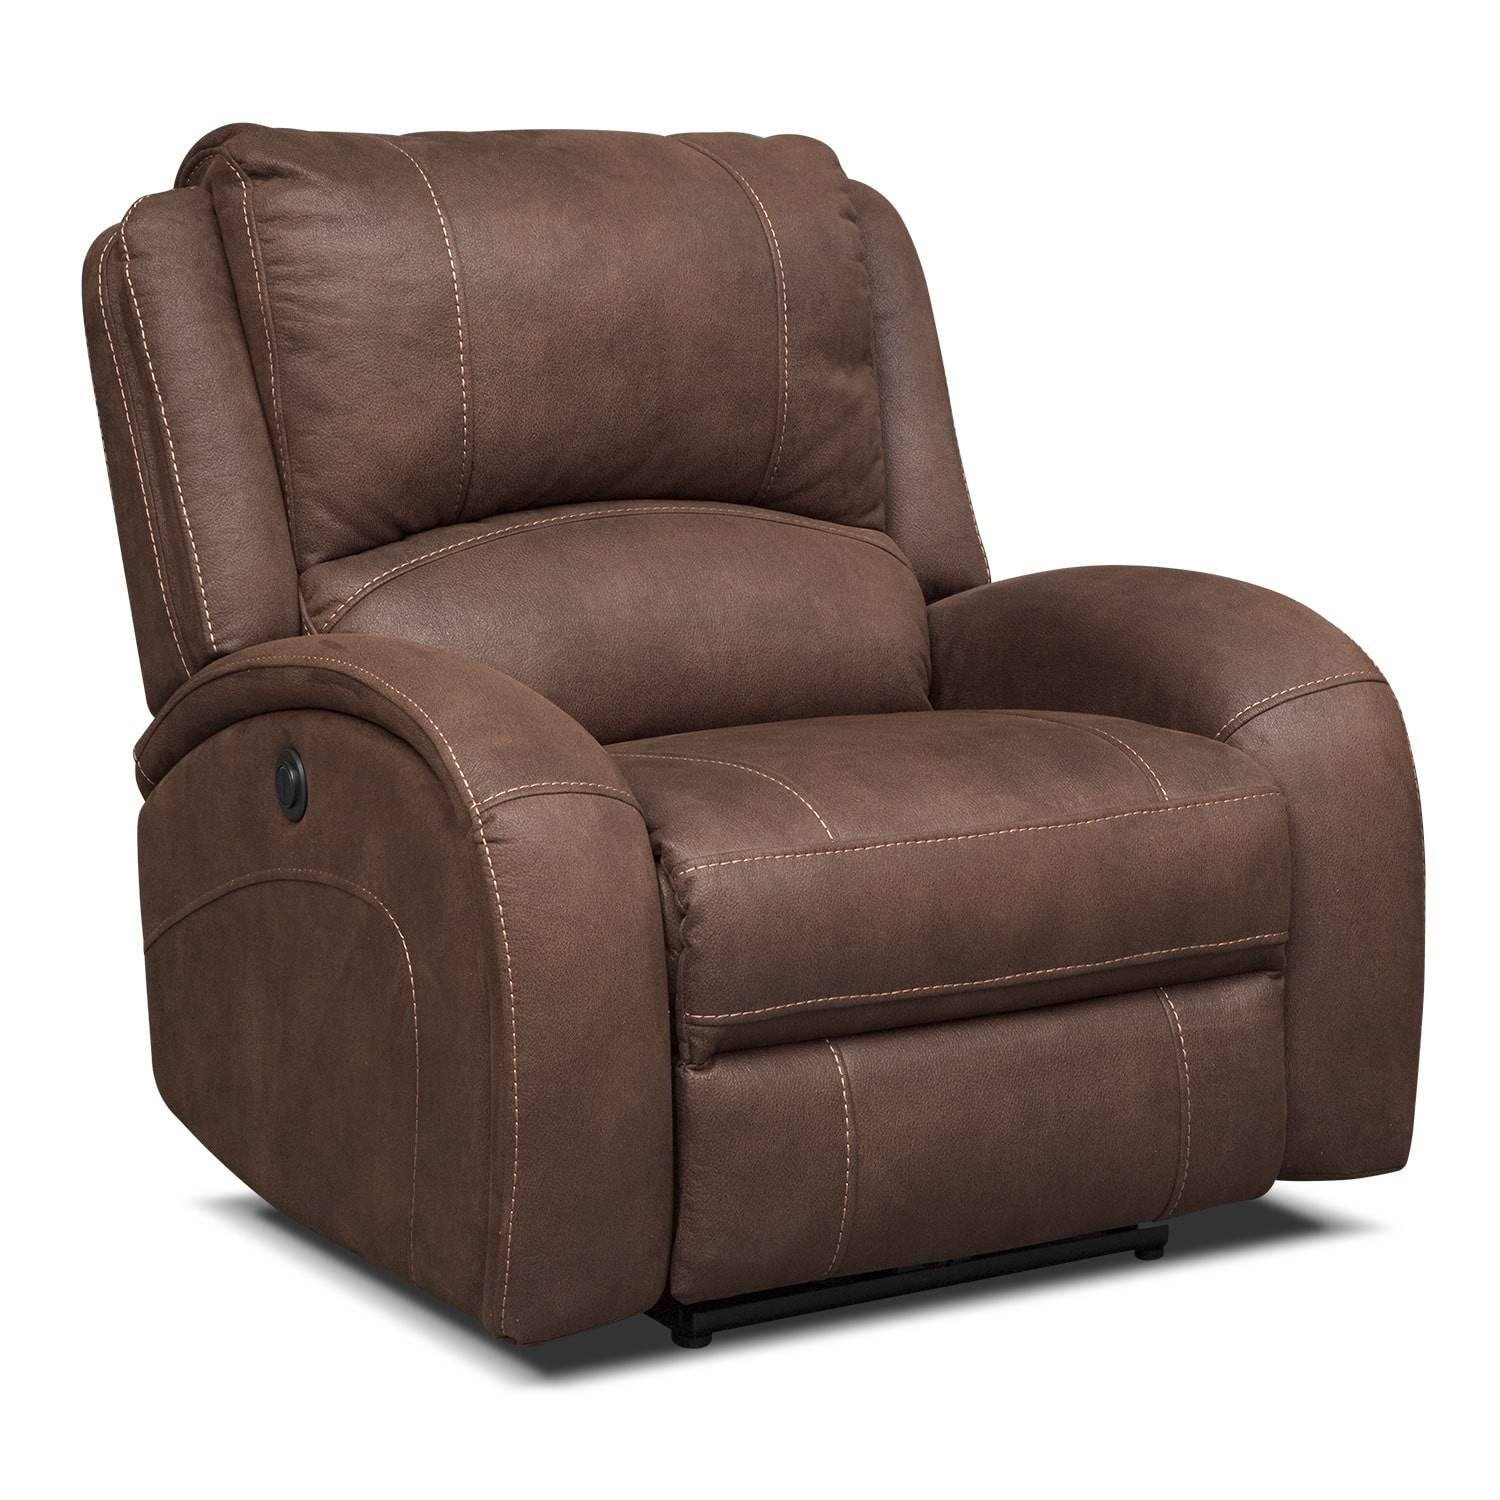 Ambrose Power Recliner - Brown